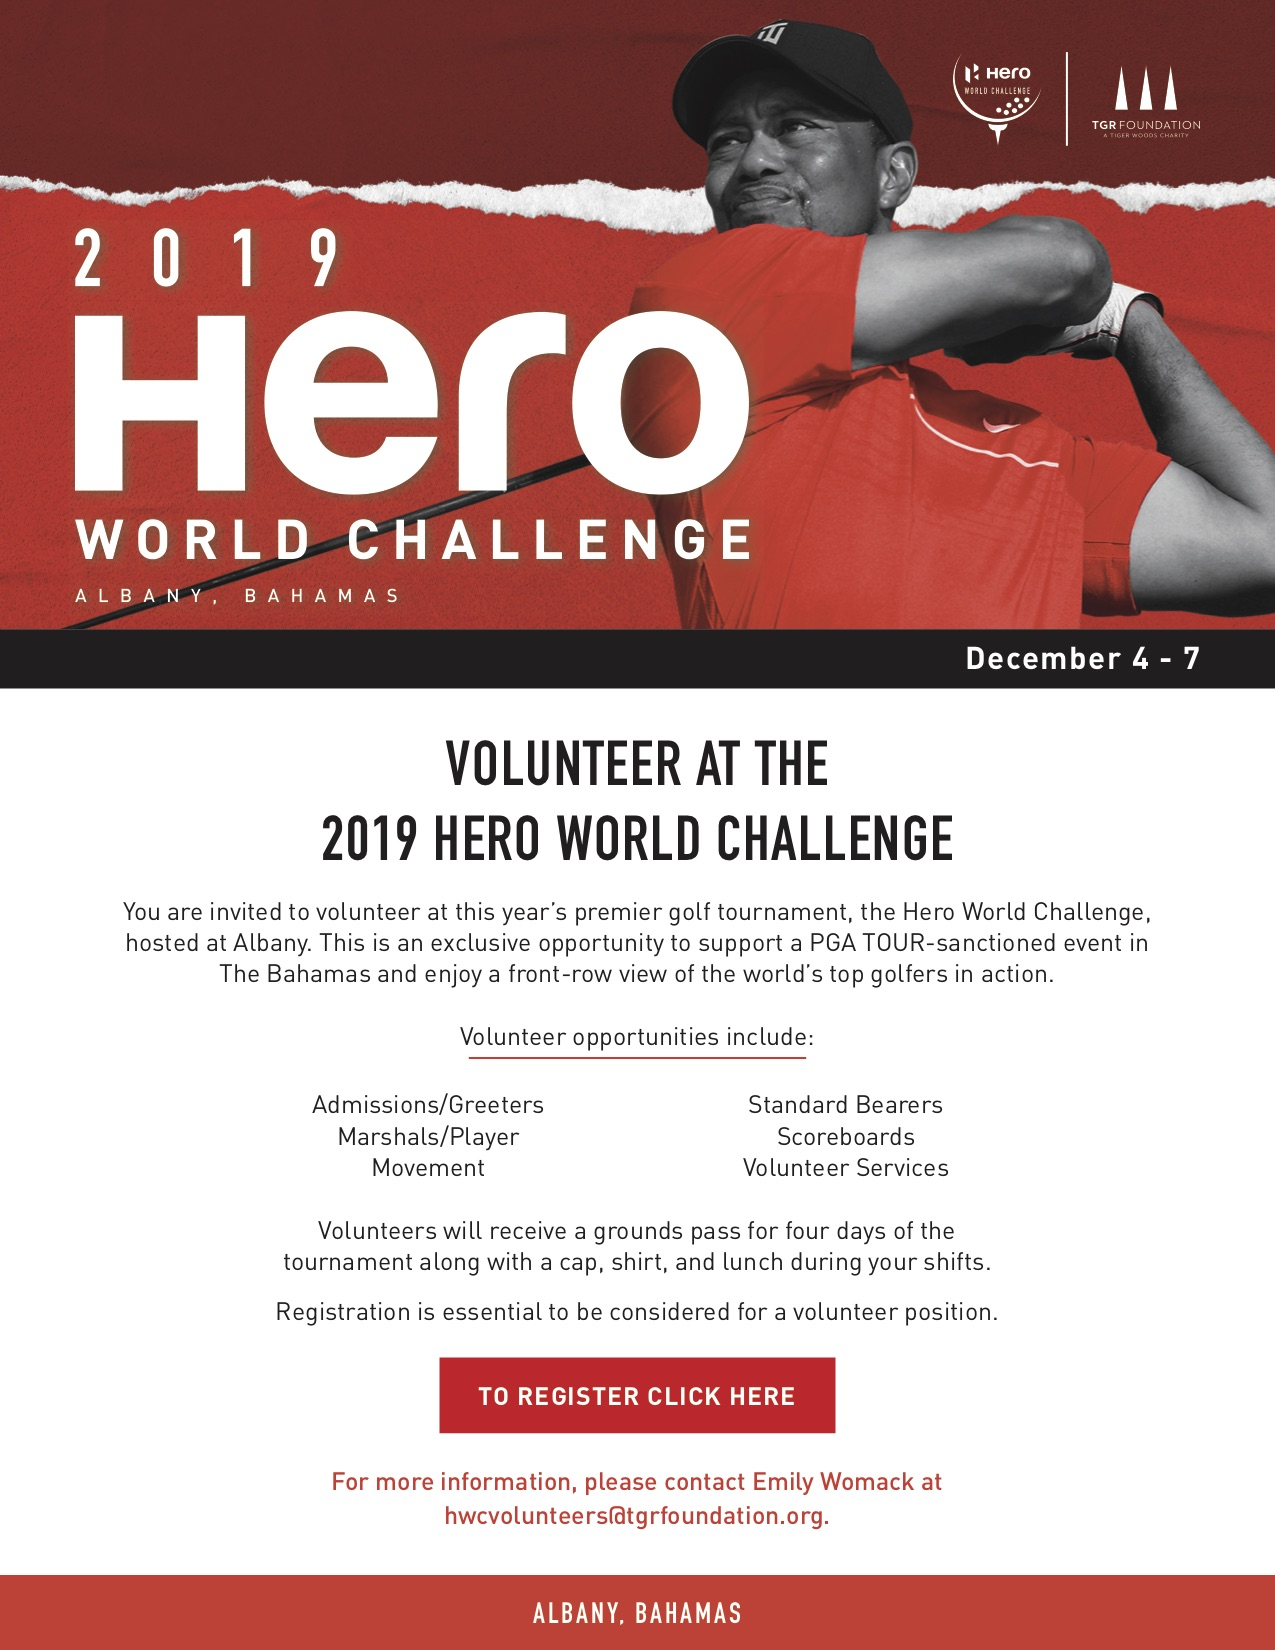 Volunteer Opportunity at the Hero World Challenge at Albany